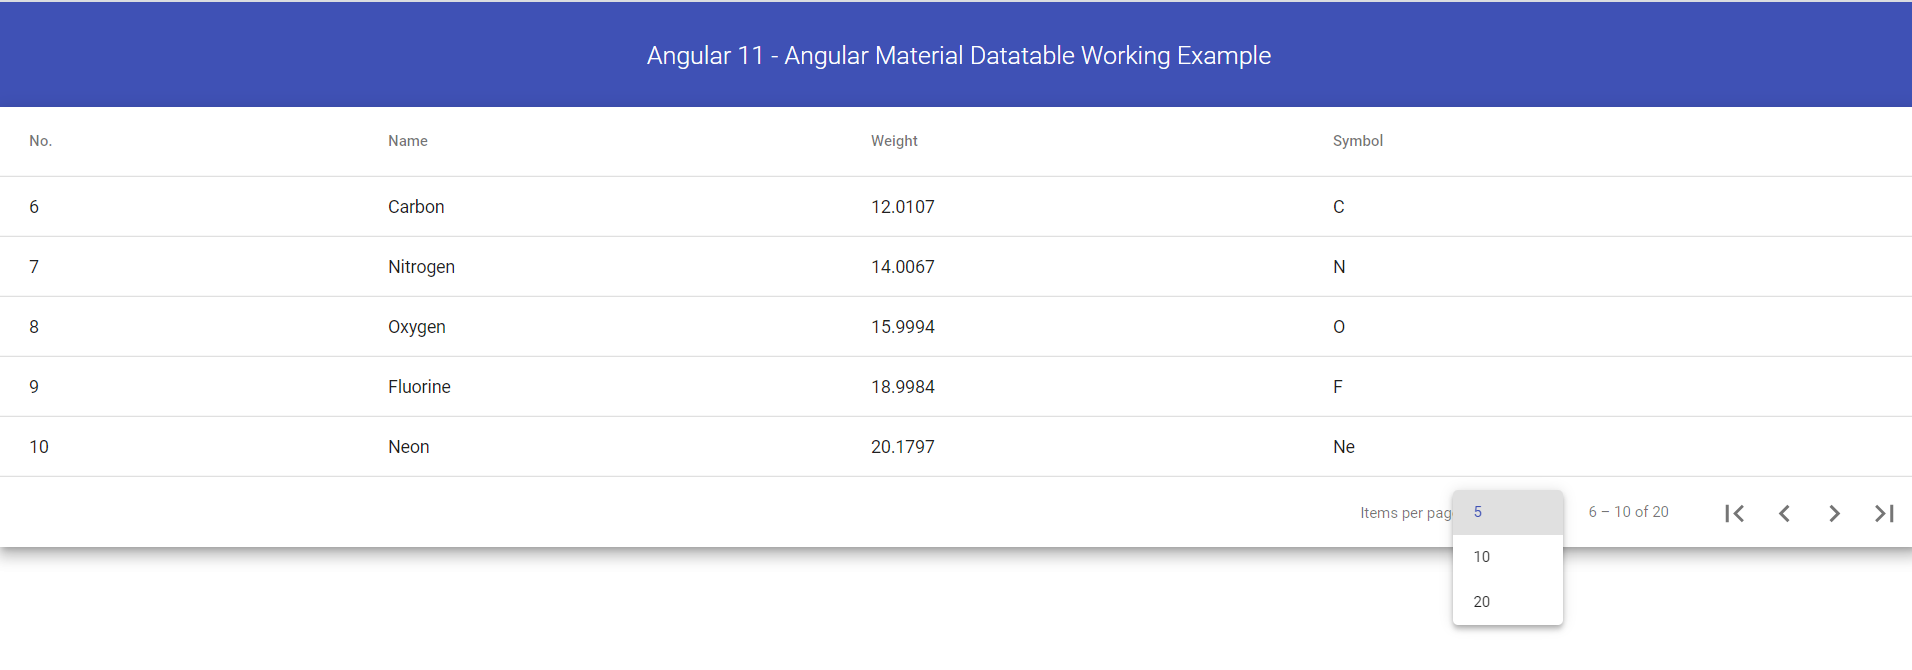 Angular 11 - Angular Material Datatable Working Example